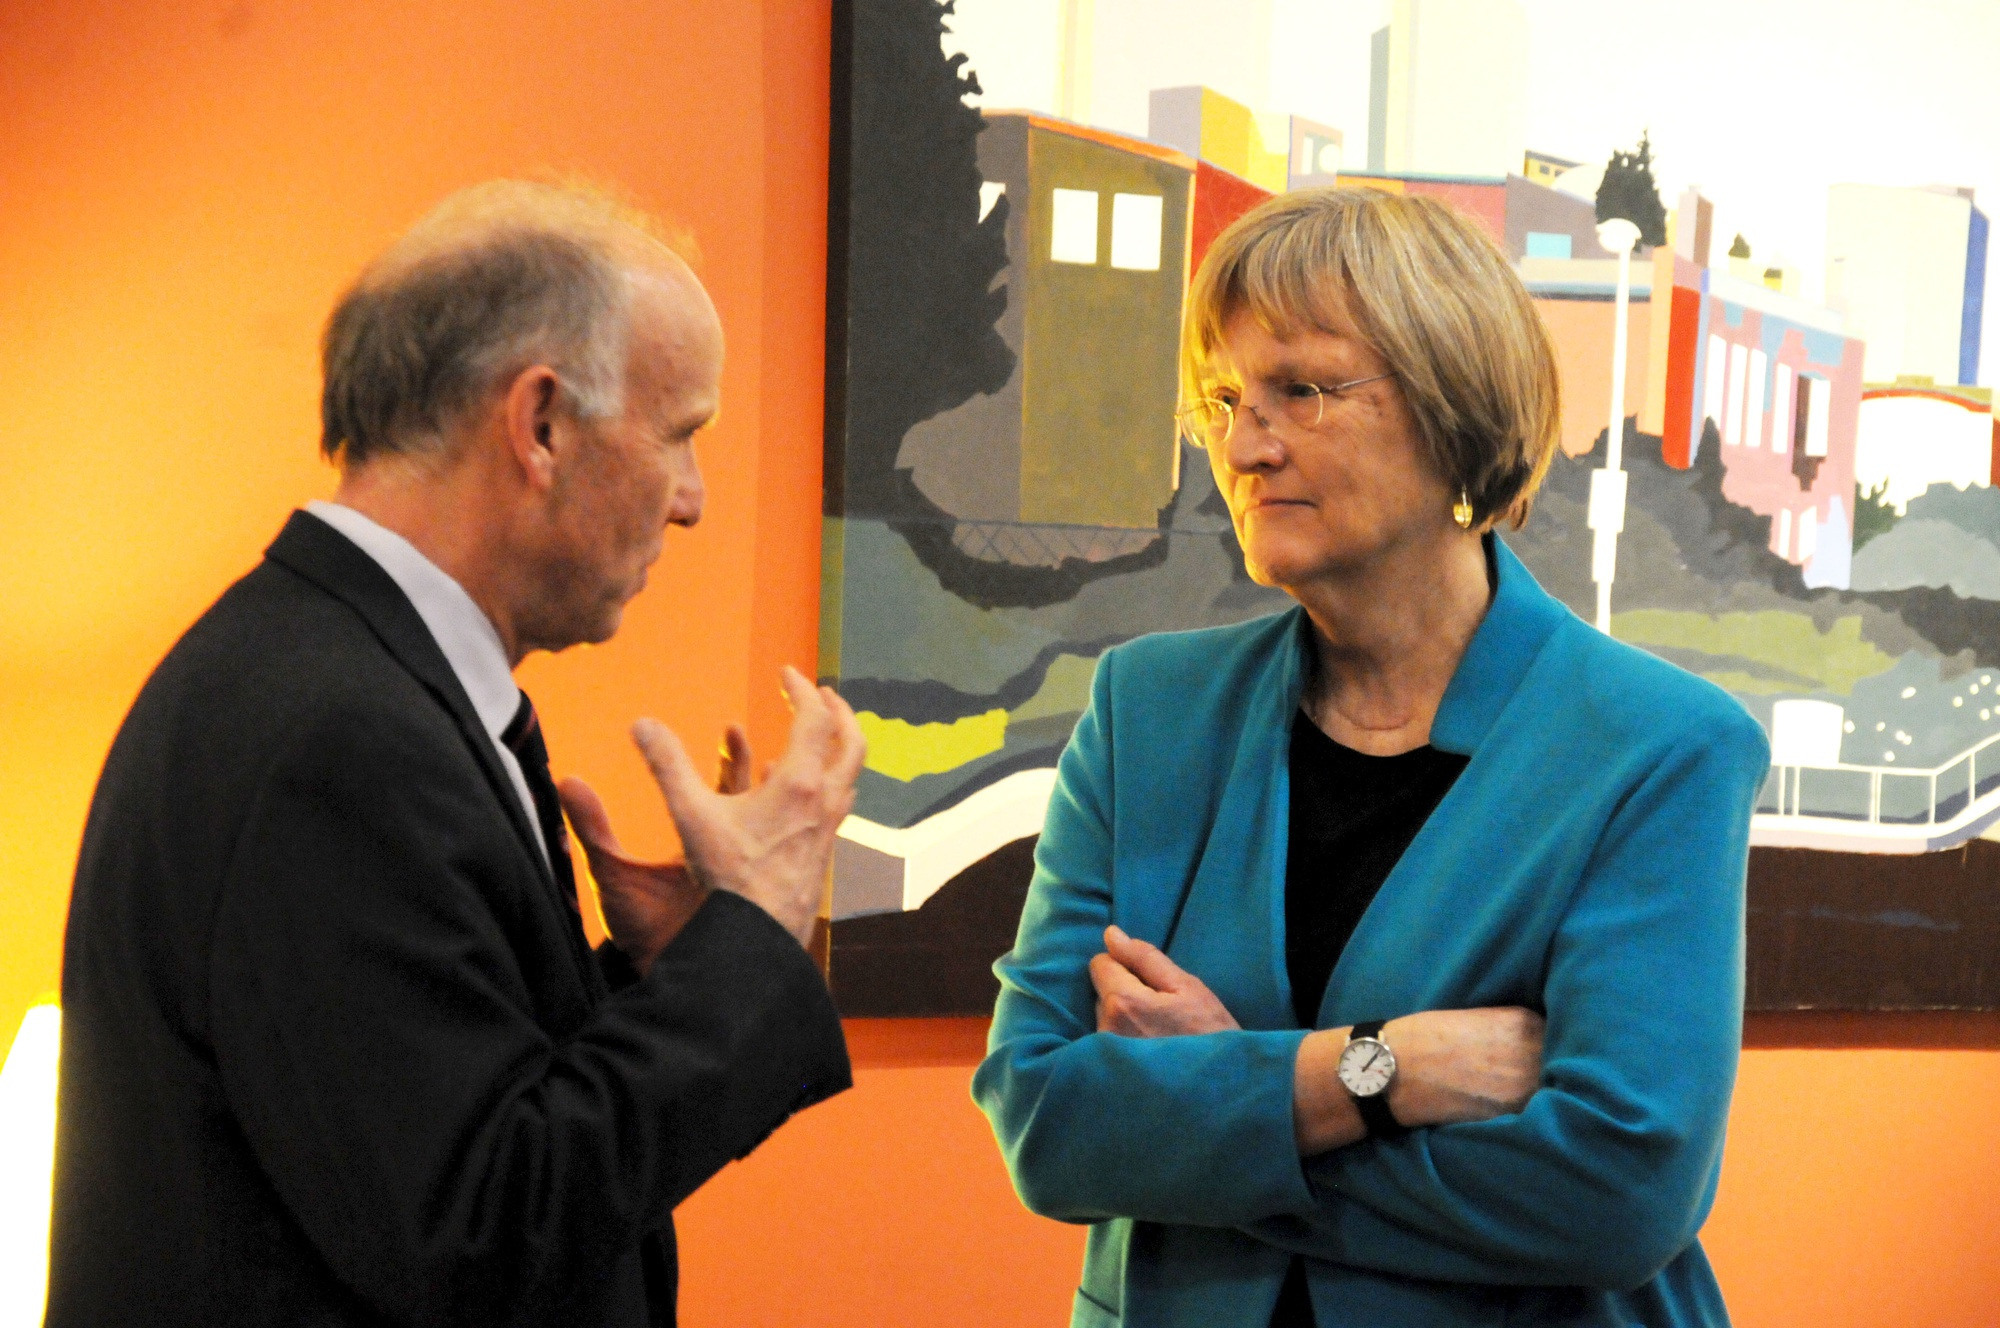 President Drew Faust is greeted by Currier House Faculty Dean Richard W. Wrangham in the Currier Senior Common Room Tuesday evening. President Faust was welcomed to Currier as part of its monthly speaker series, Currier Conversations.